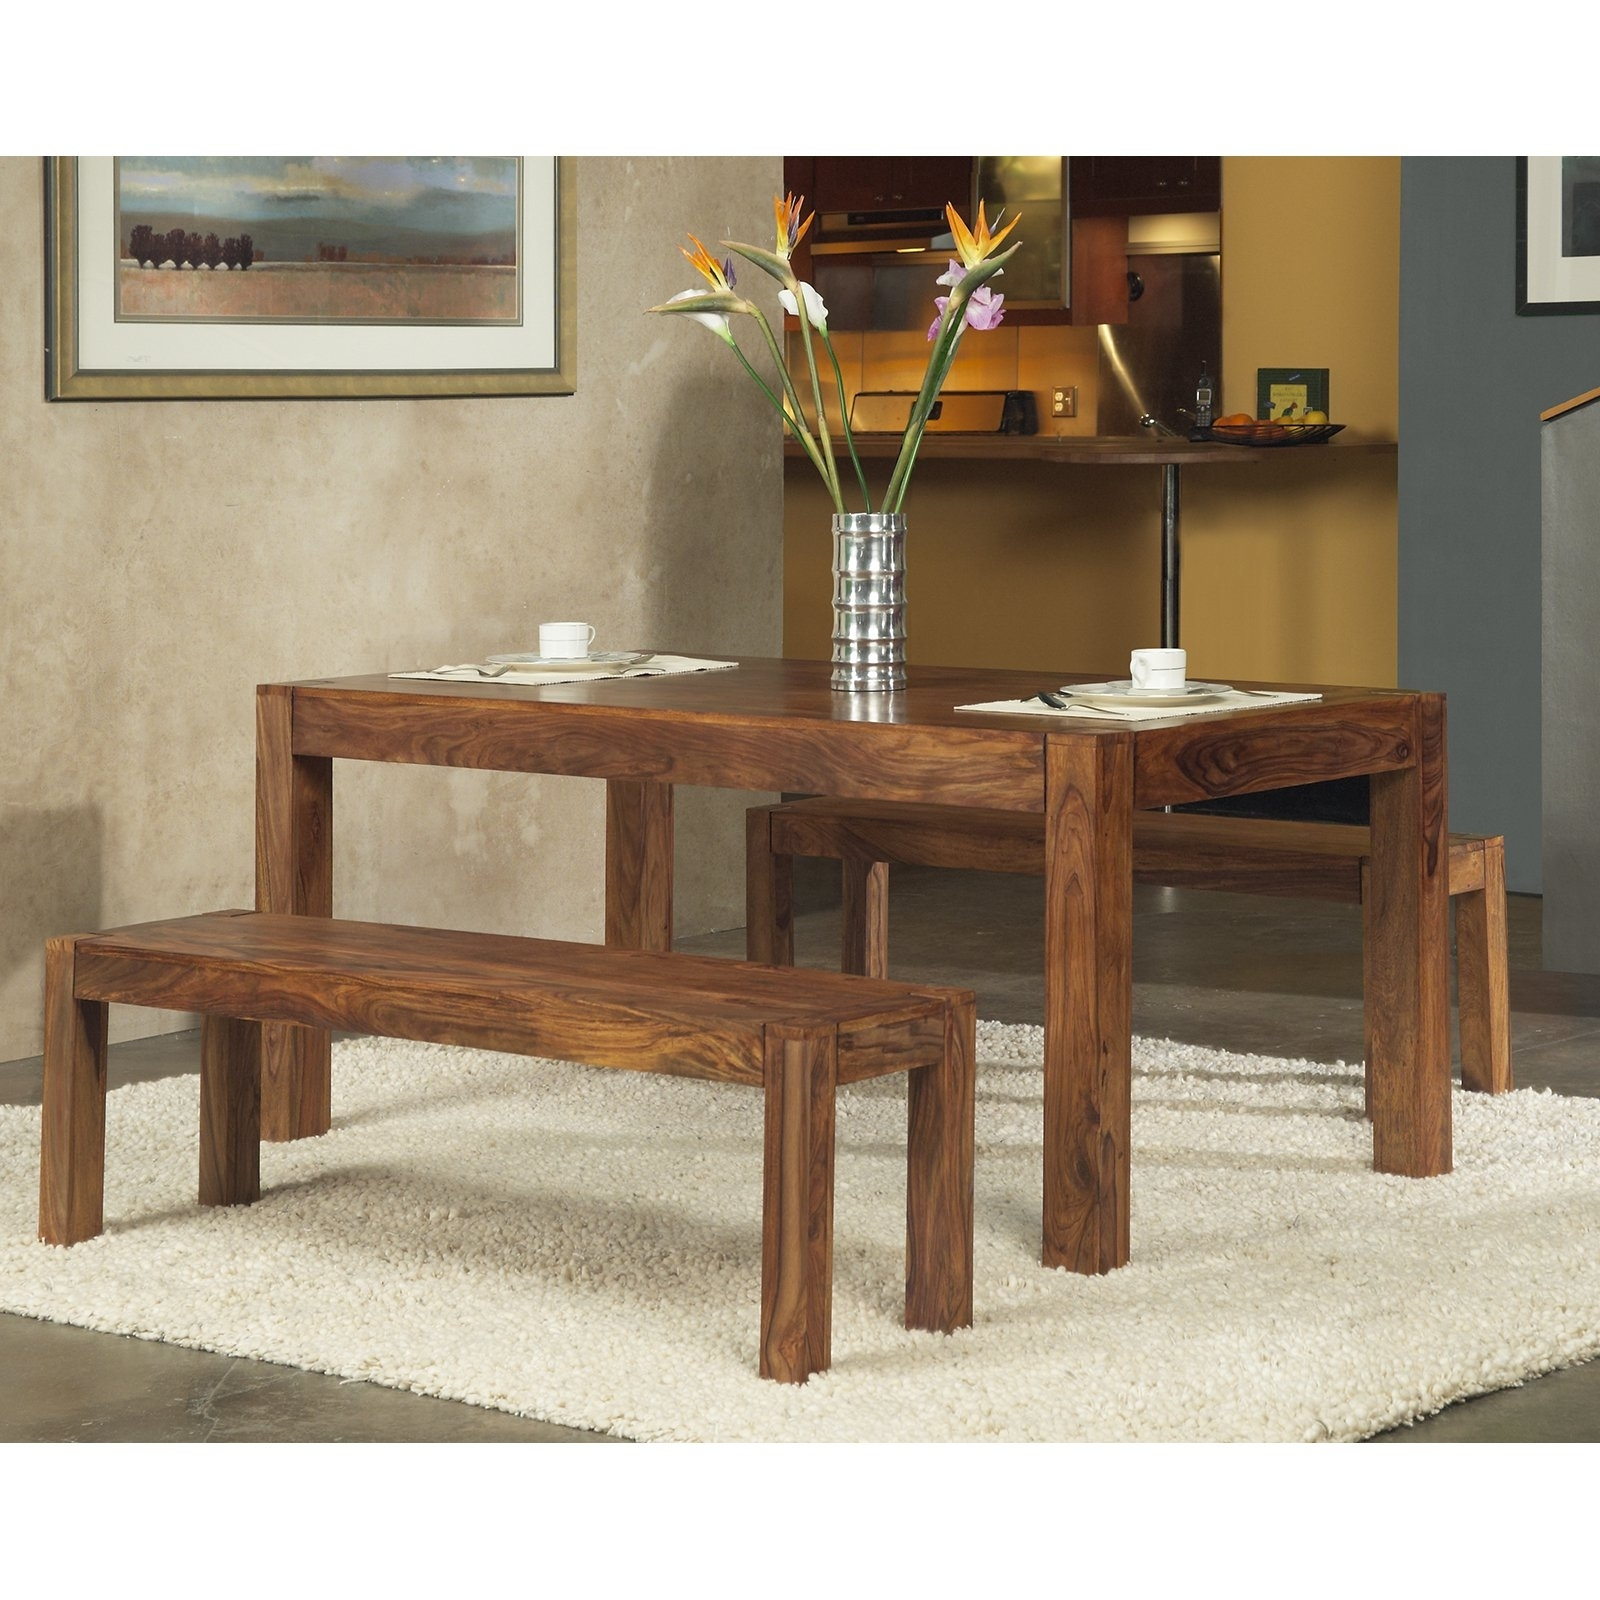 Modus Genus 3 Piece Dining Table Set With 2 Benches – Walmart In Well Known Dining Tables And 2 Benches (View 15 of 25)